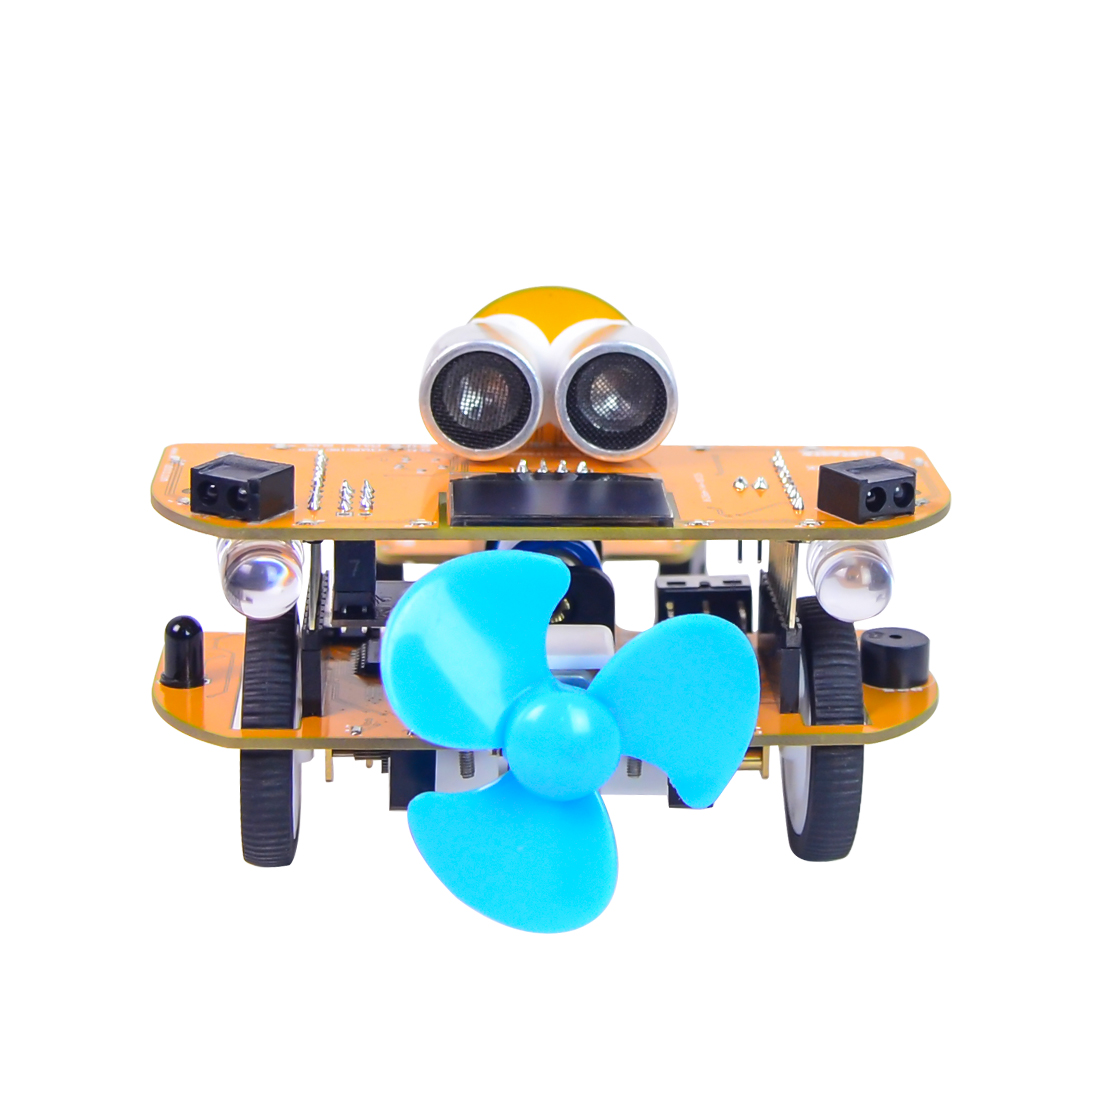 Programmable Intelligent Car Steam Educational DIY Plane With Graphical Processing Scratch Mixly For Arduino UNO R3